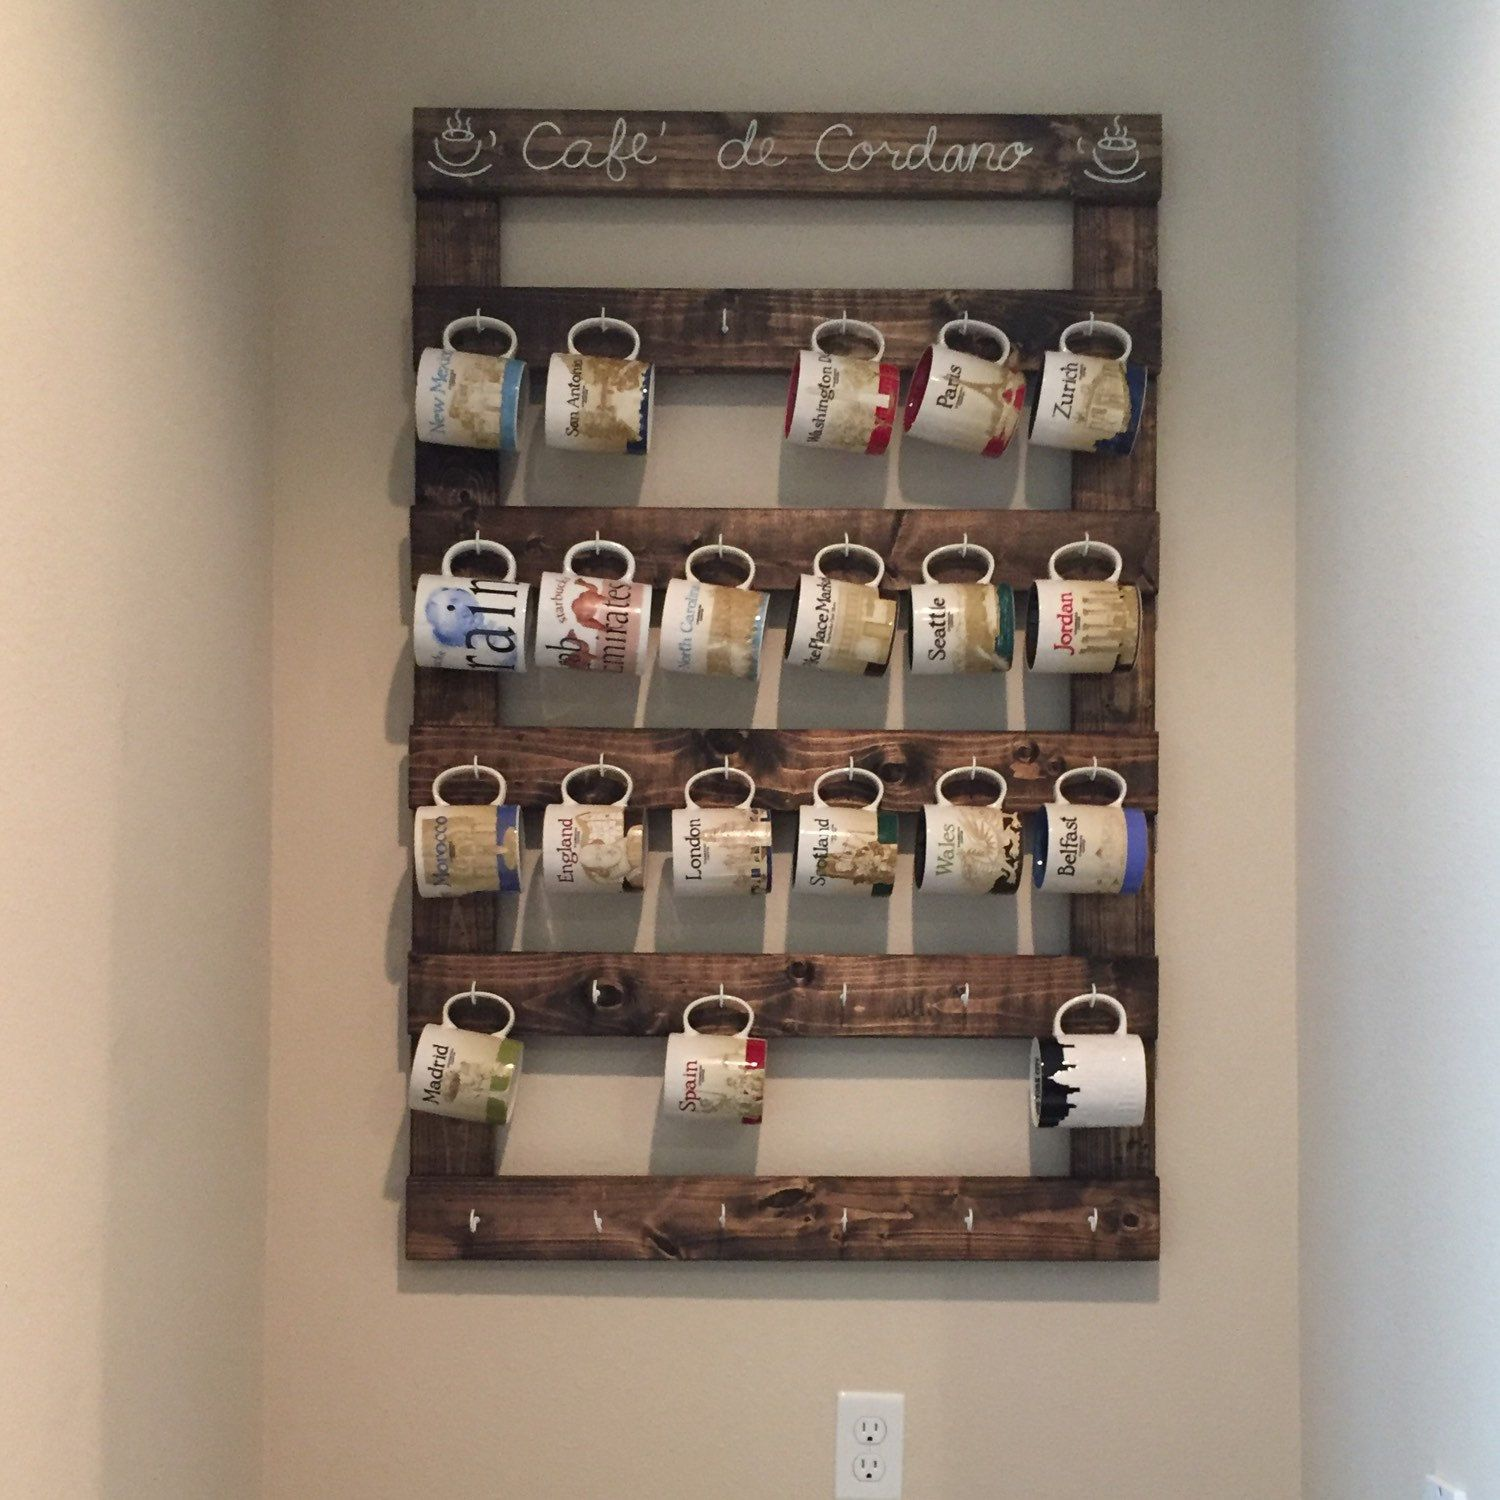 Large Custom Coffee Mug Rack Photo A Wonderful Customer Shared Displayed In  There Home With The